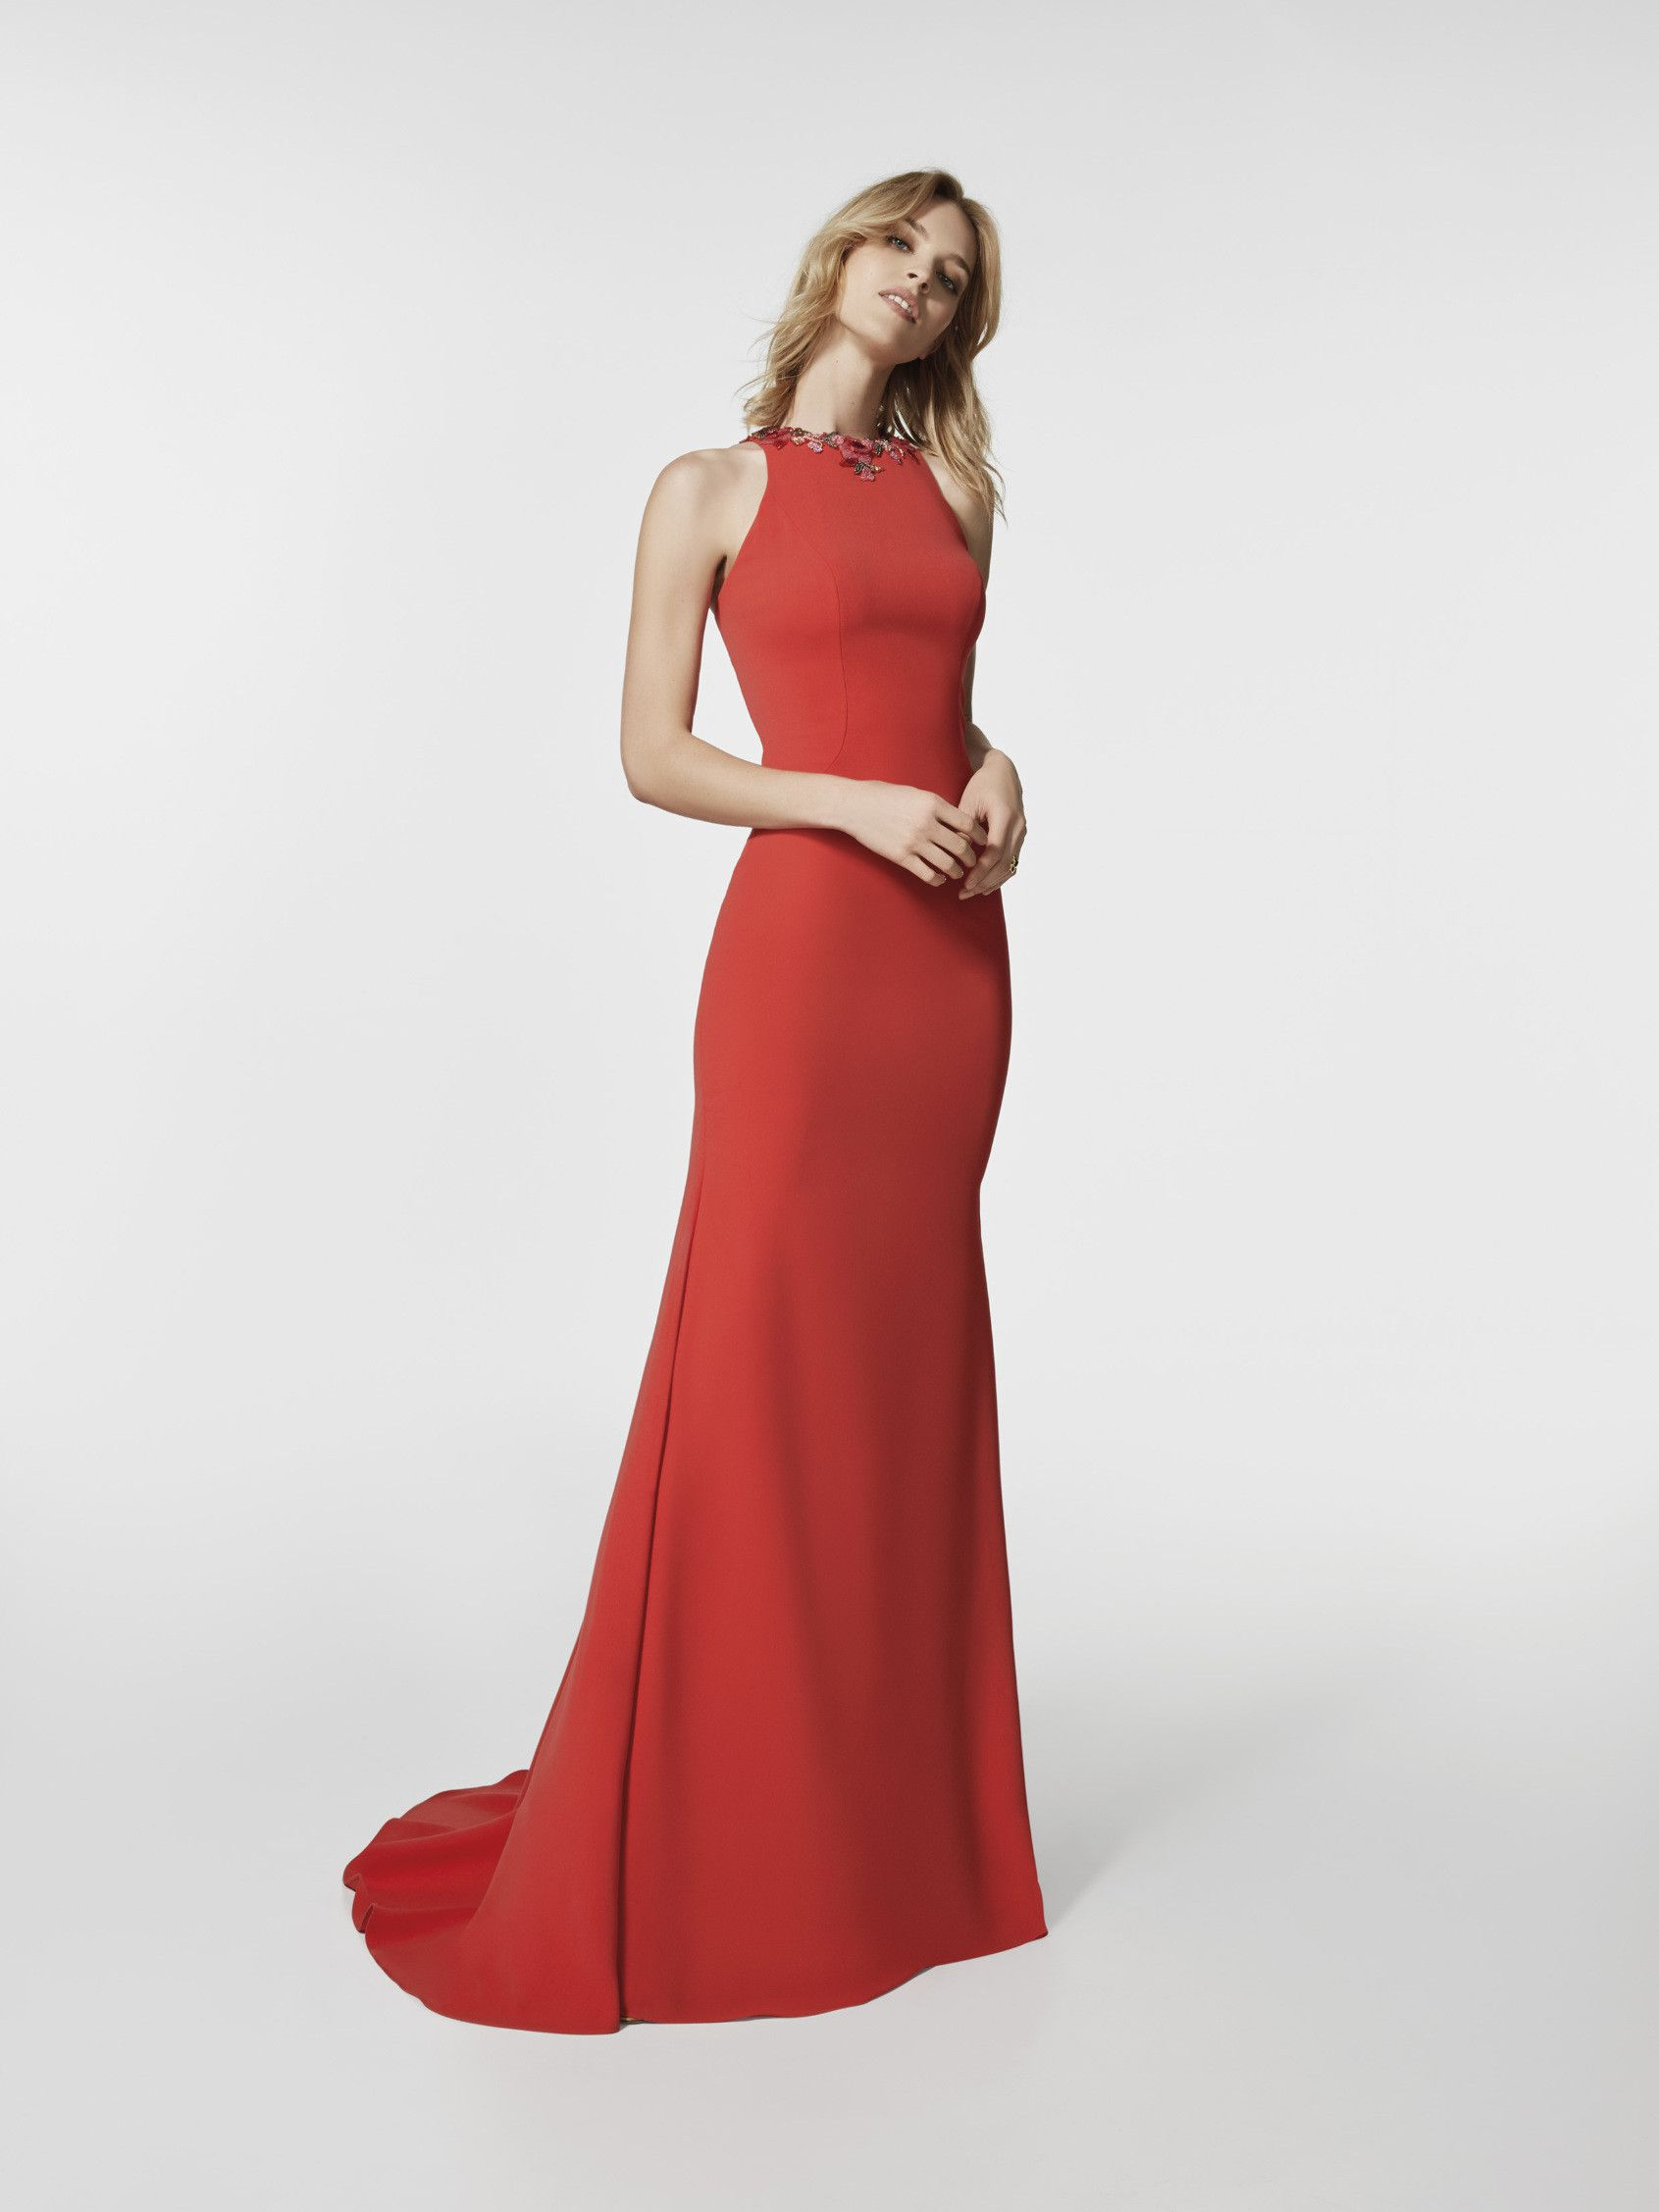 Foto Abendkleid rot (62016) | Boutique | Pinterest | Abendkleid, Rot ...